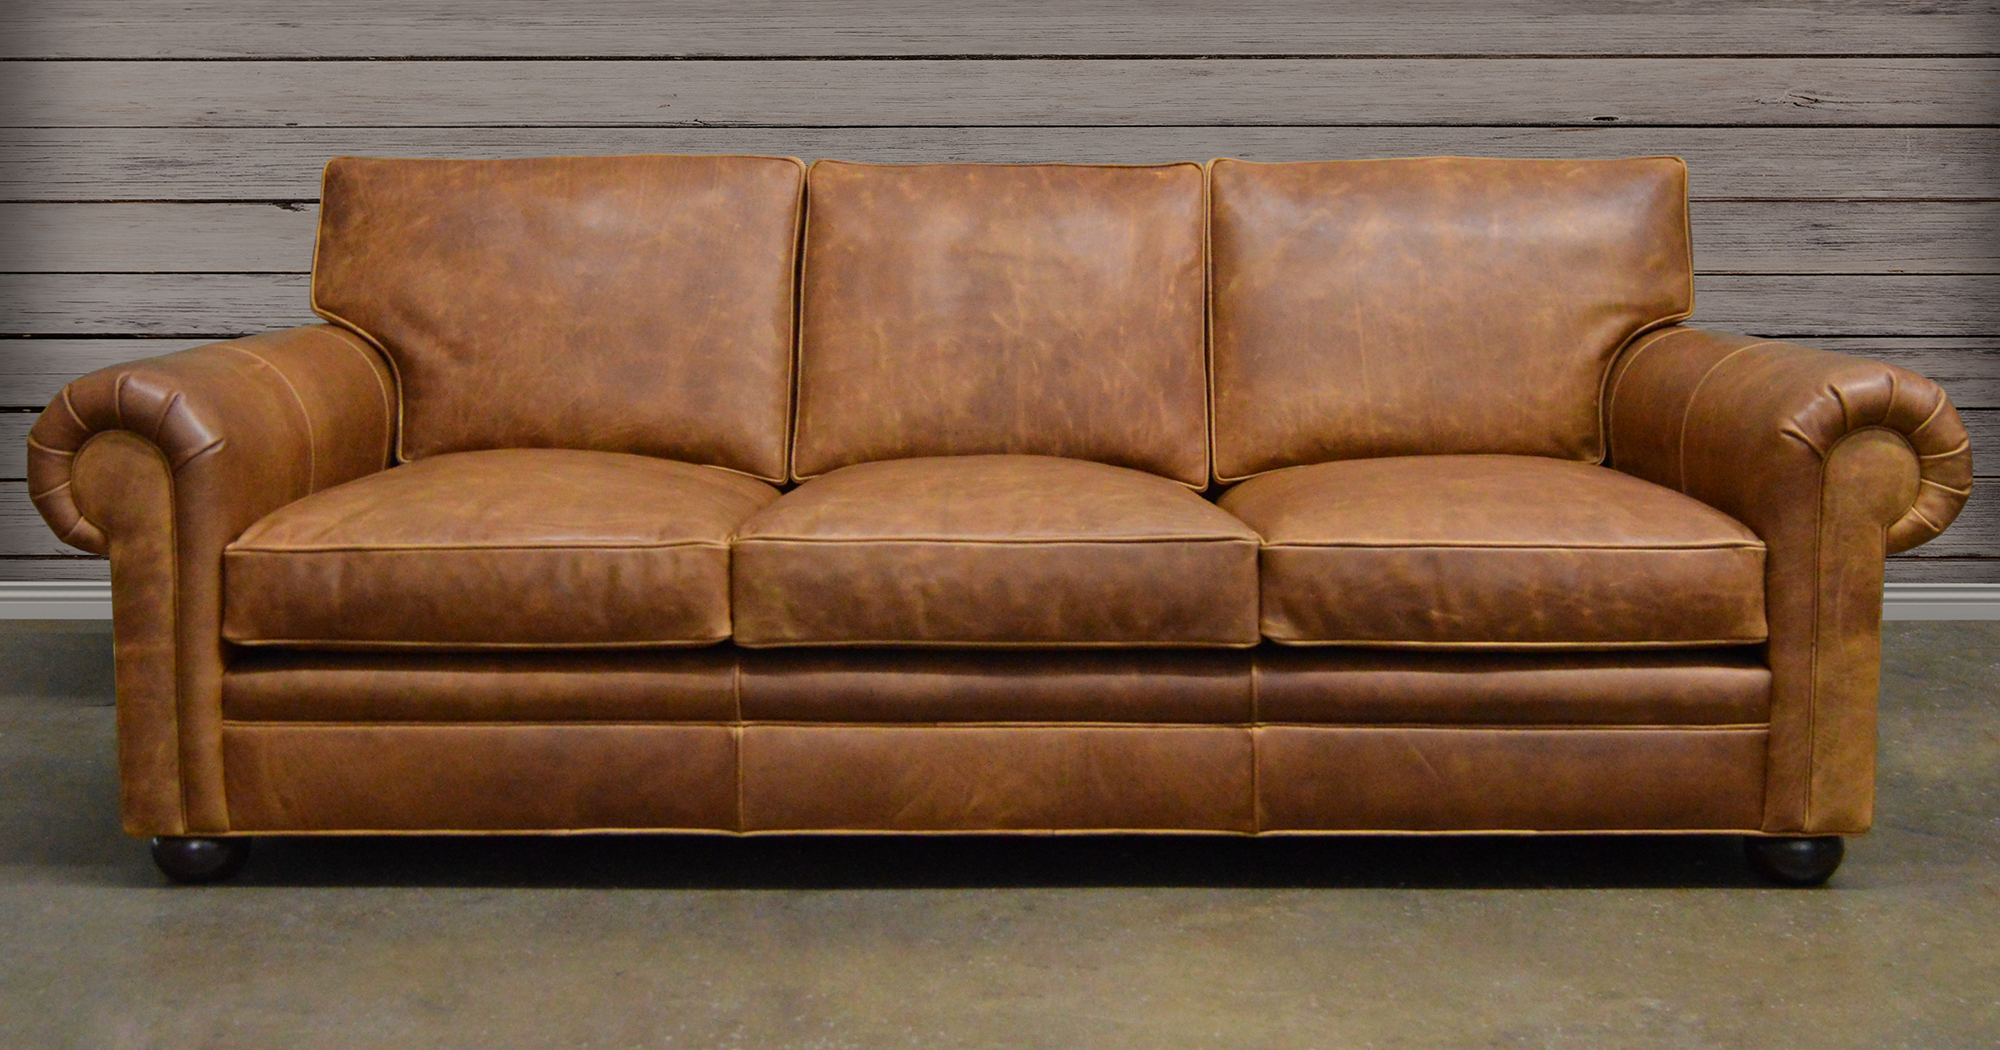 Fresh Genuine Leather Sofas Images Furnitures Classy Full Grain Leather Sofa For Luxury Living Room Check More At Http Delta